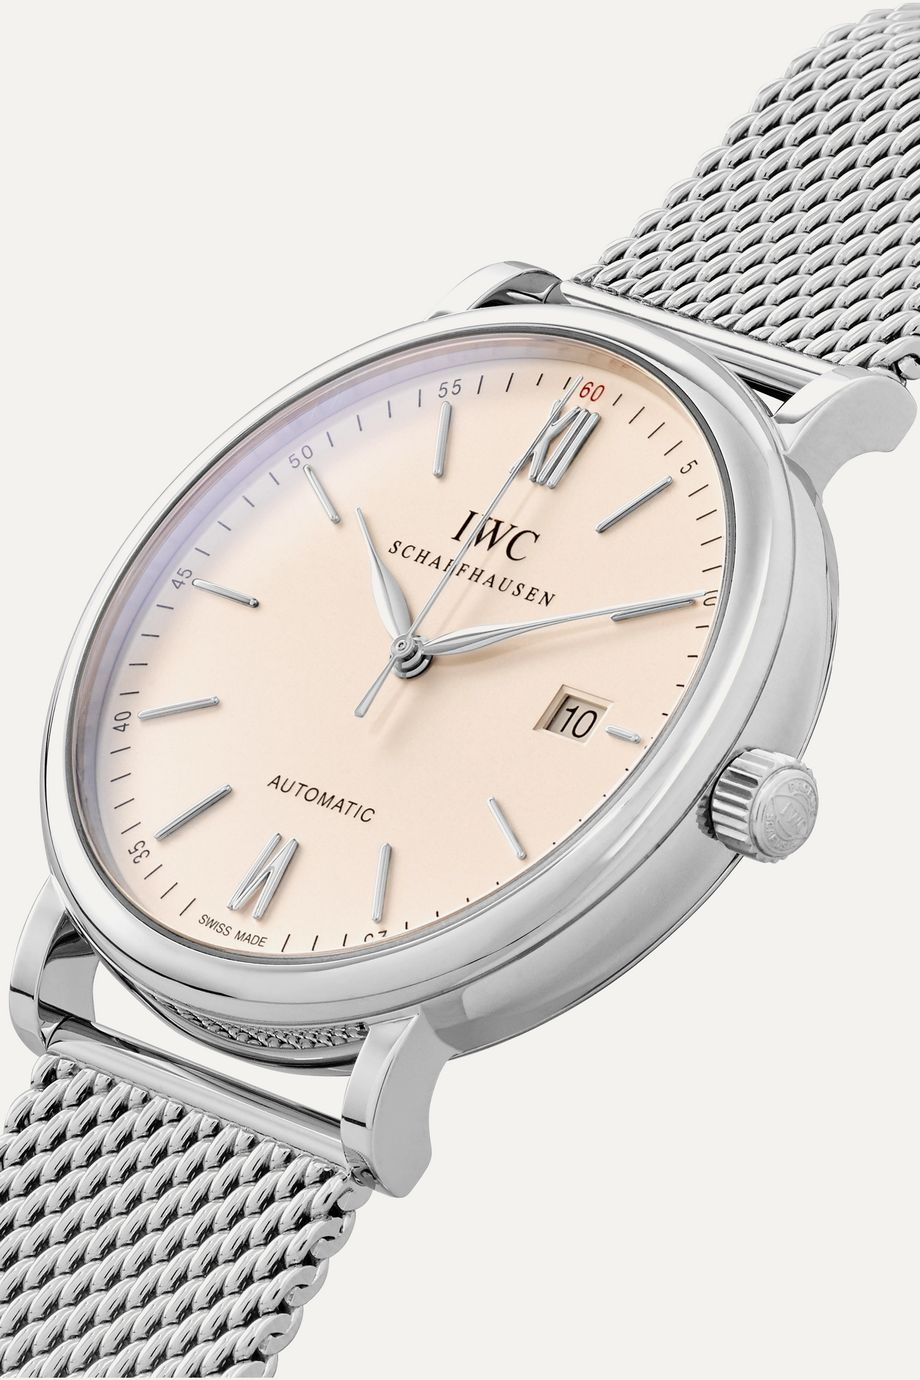 IWC SCHAFFHAUSEN Portofino Automatic 40 stainless steel watch